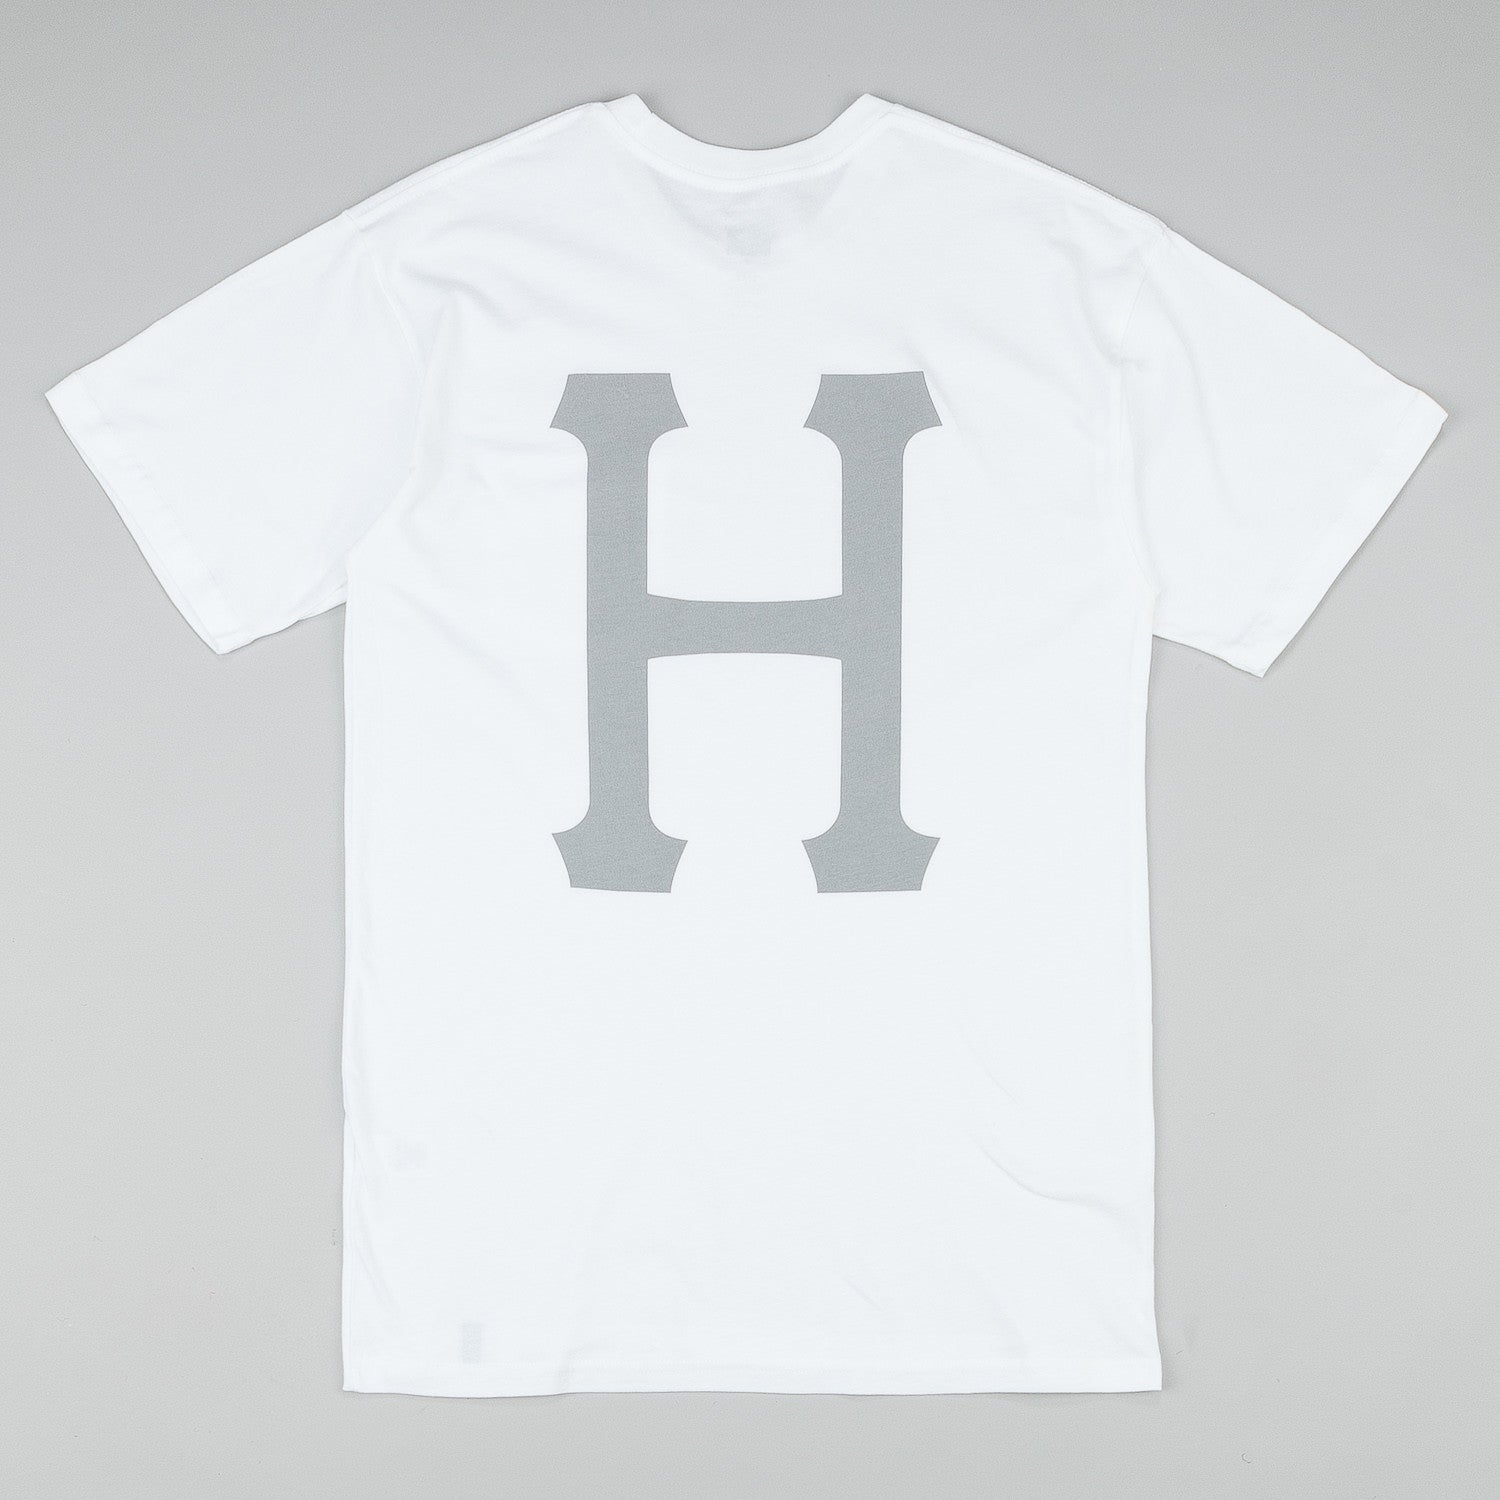 HUF Classic H Pocket T Shirt - White / Grey